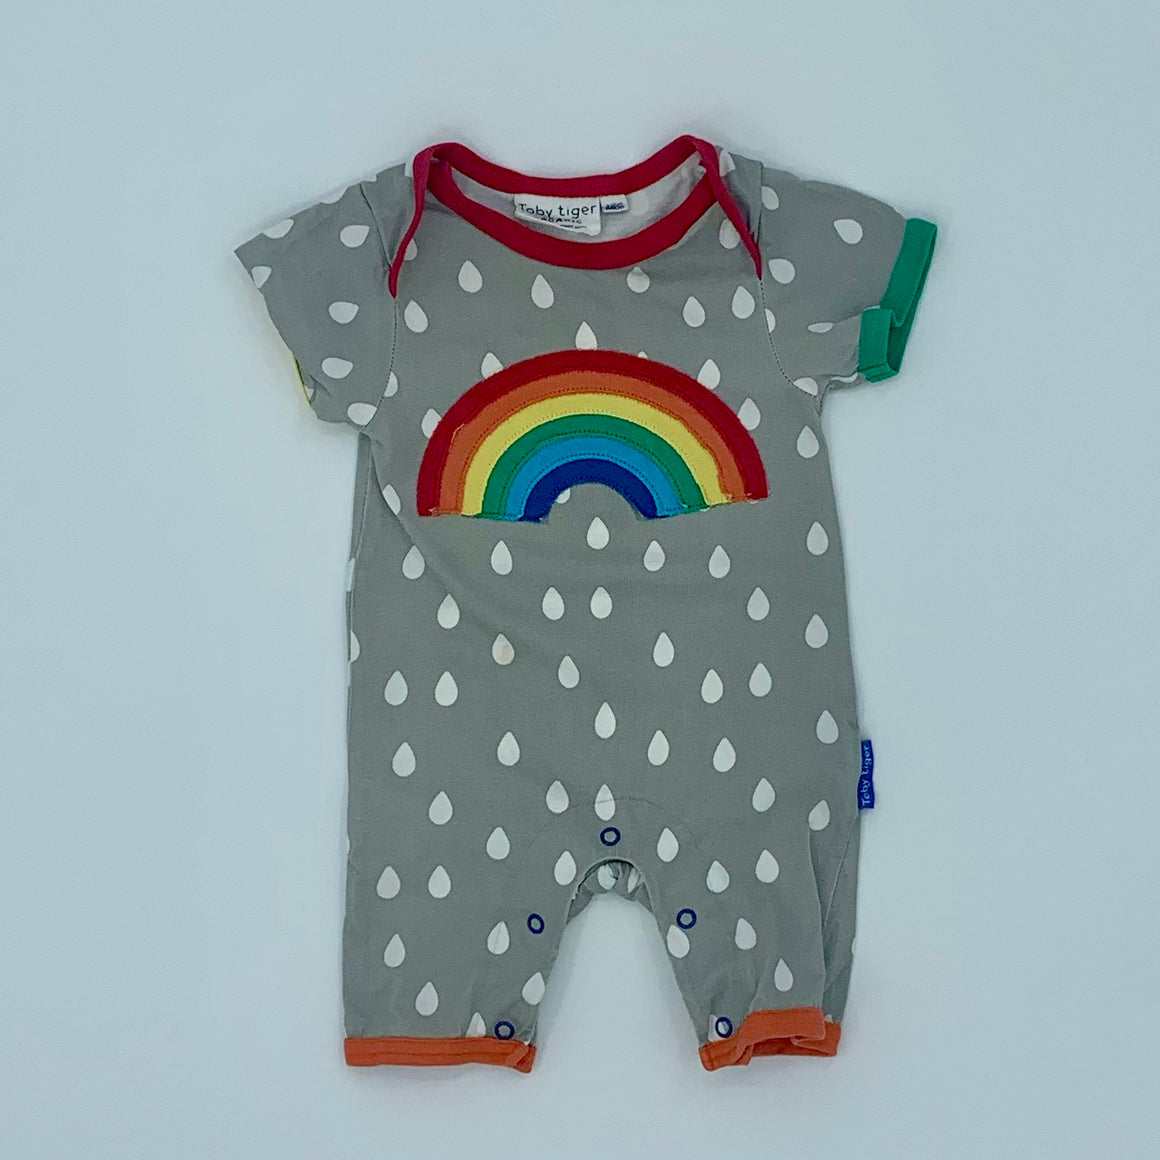 Gently Worn Toby Tiger grey raindrops romper size 3-6 months